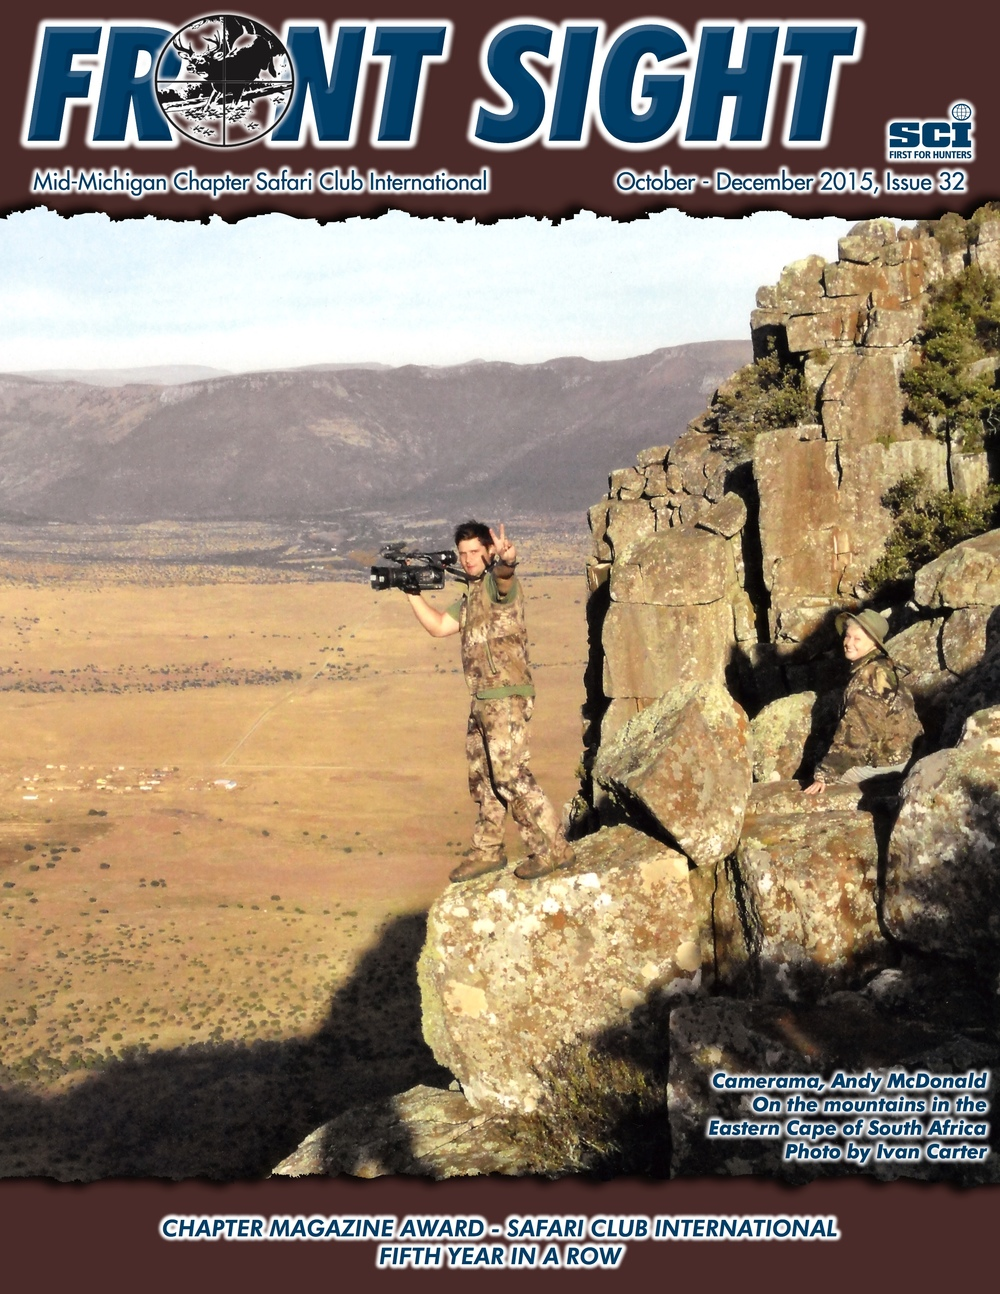 Issue 32, October 2015